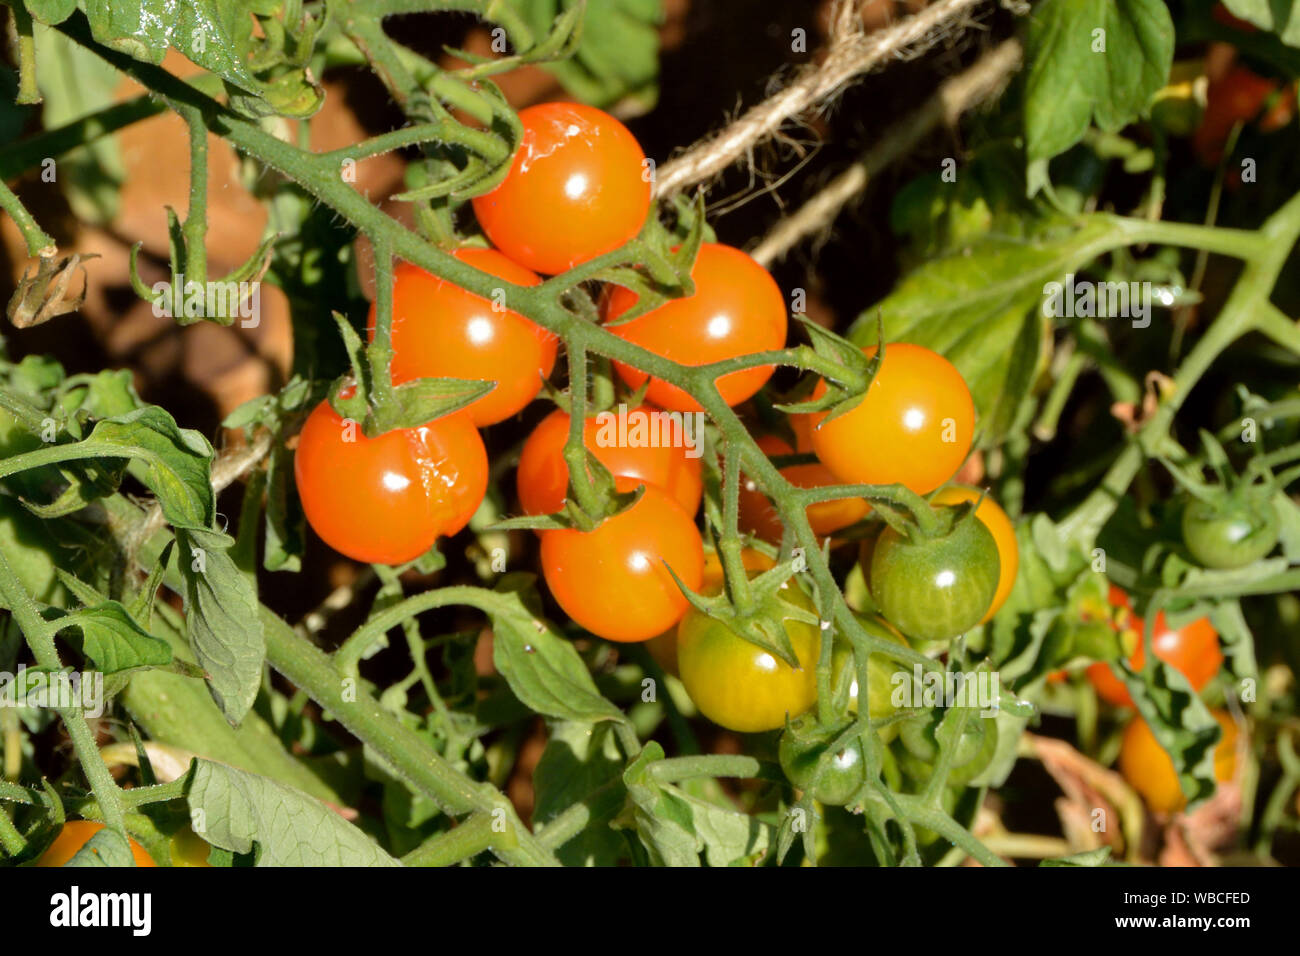 Tomatoes growing in a UK garden Stock Photo